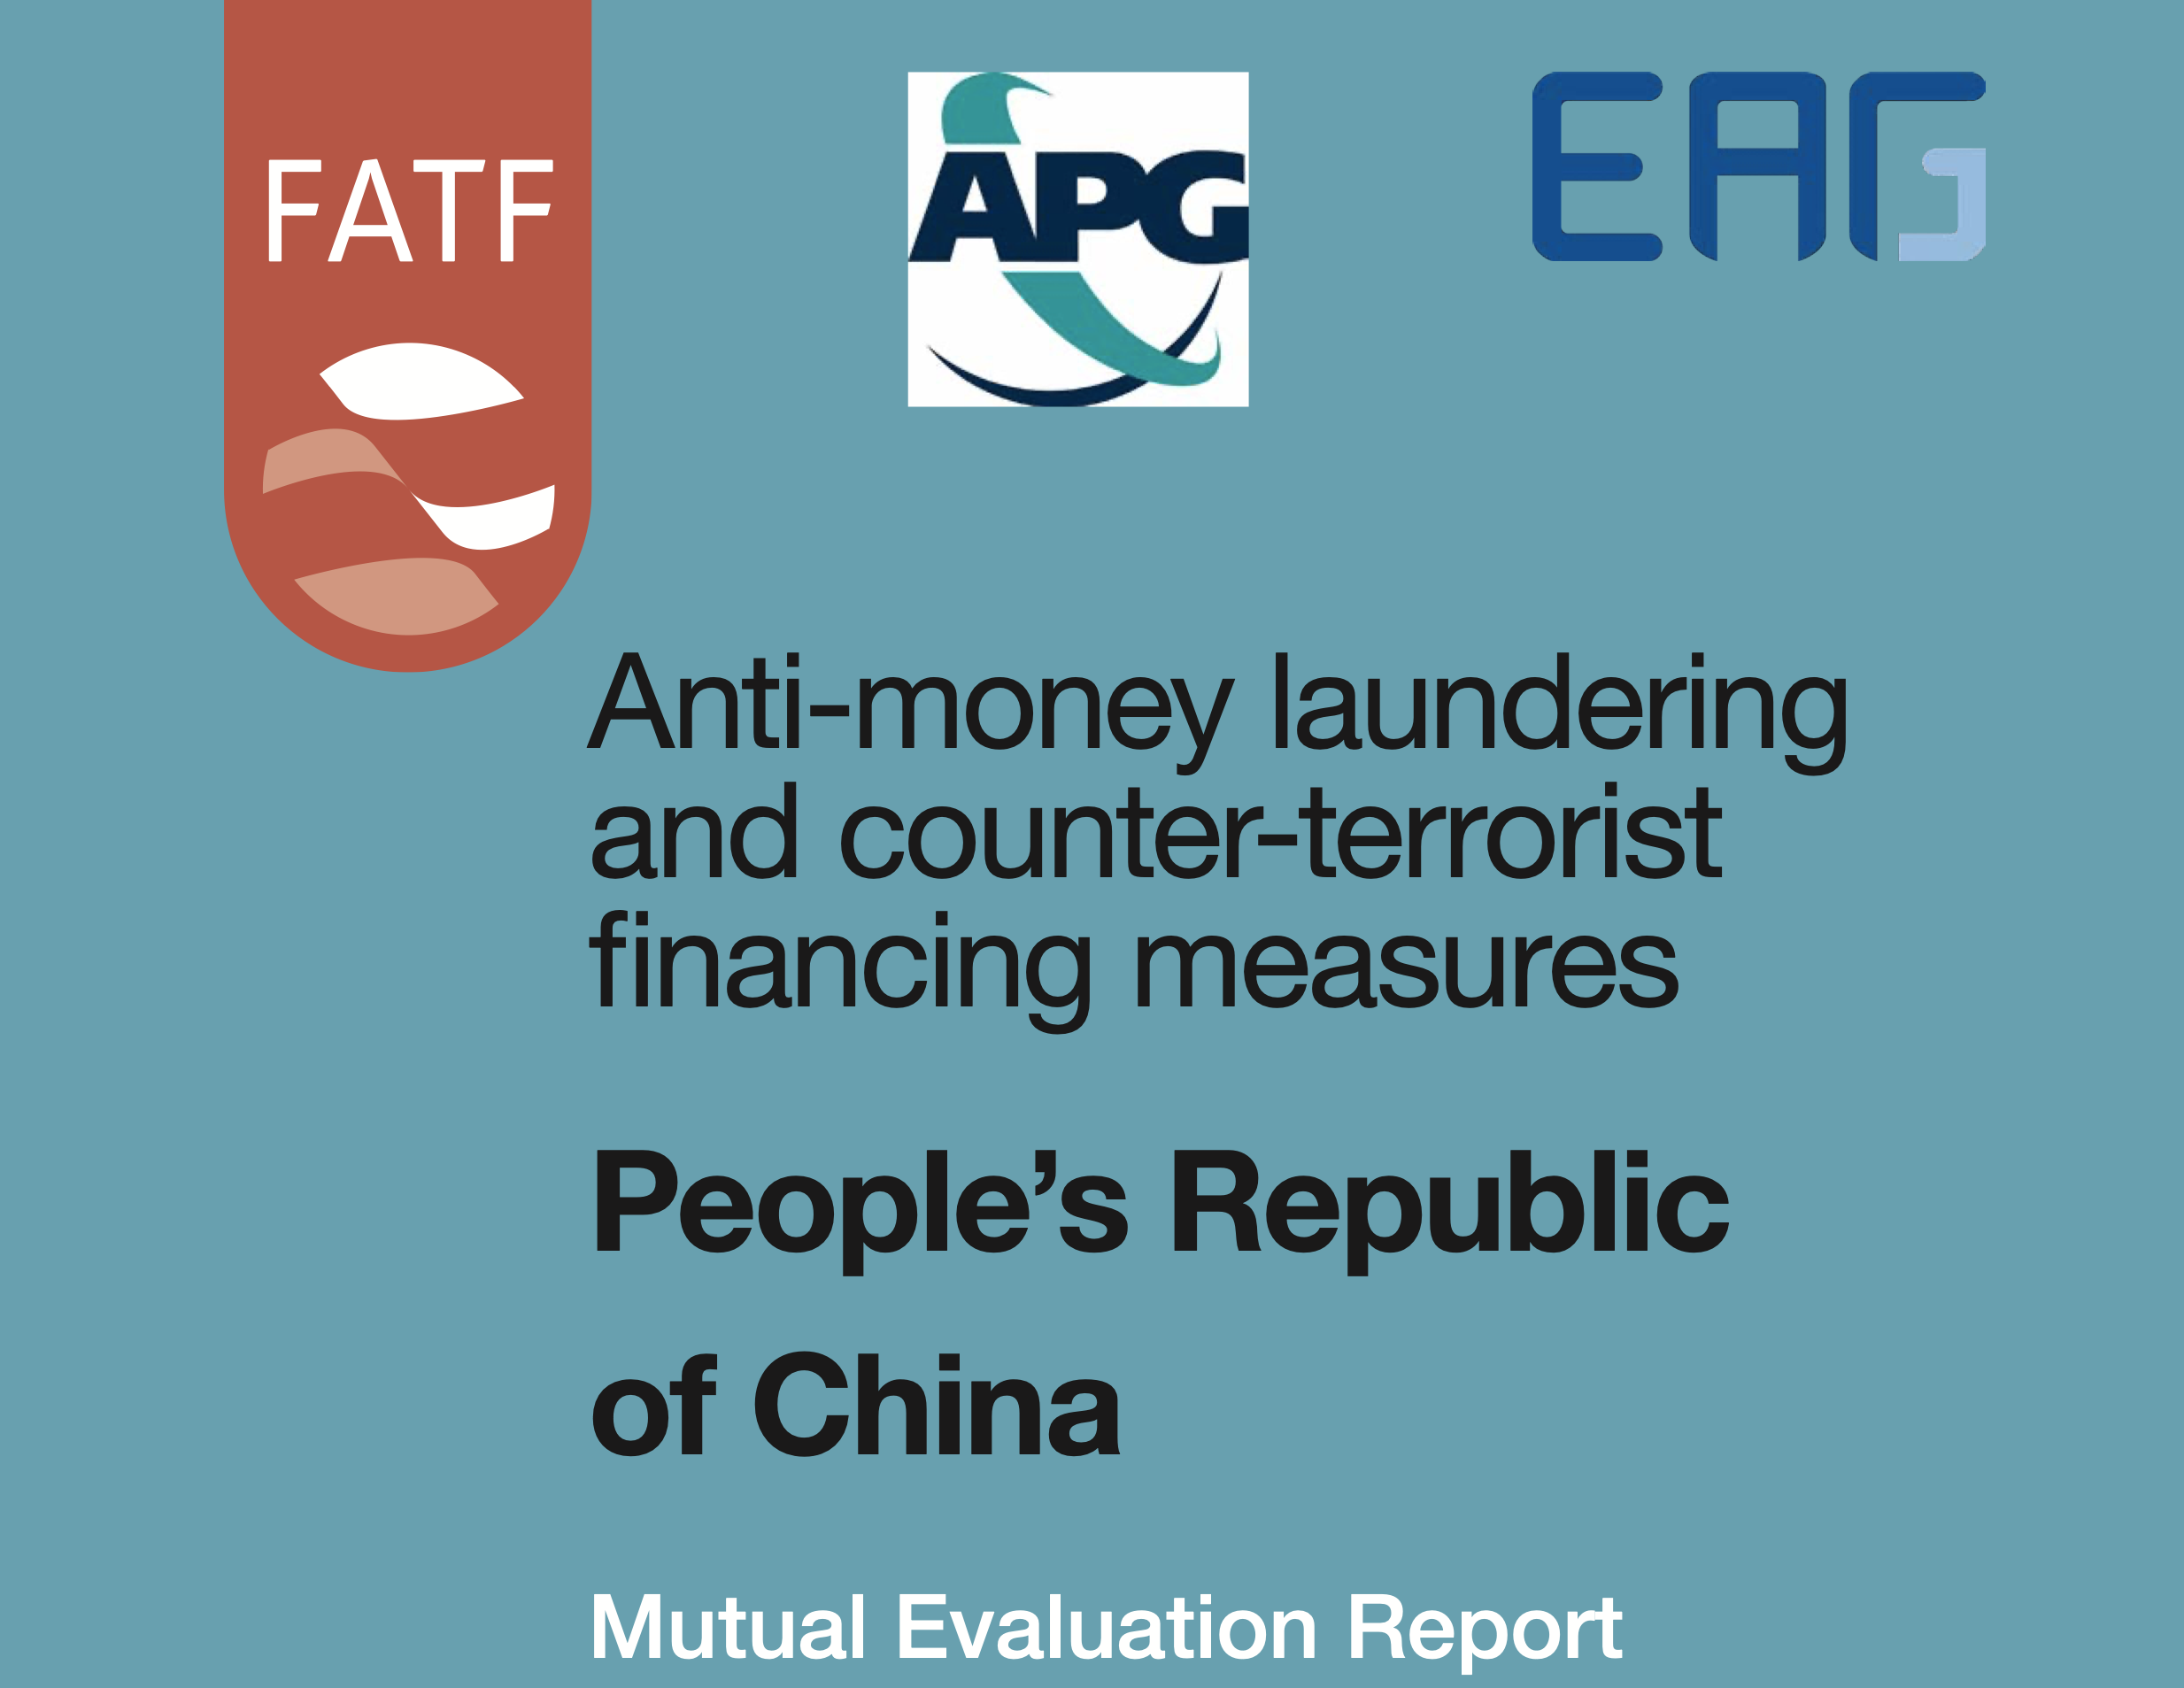 FATF Mutual Evaluation Report – People's Republic of China